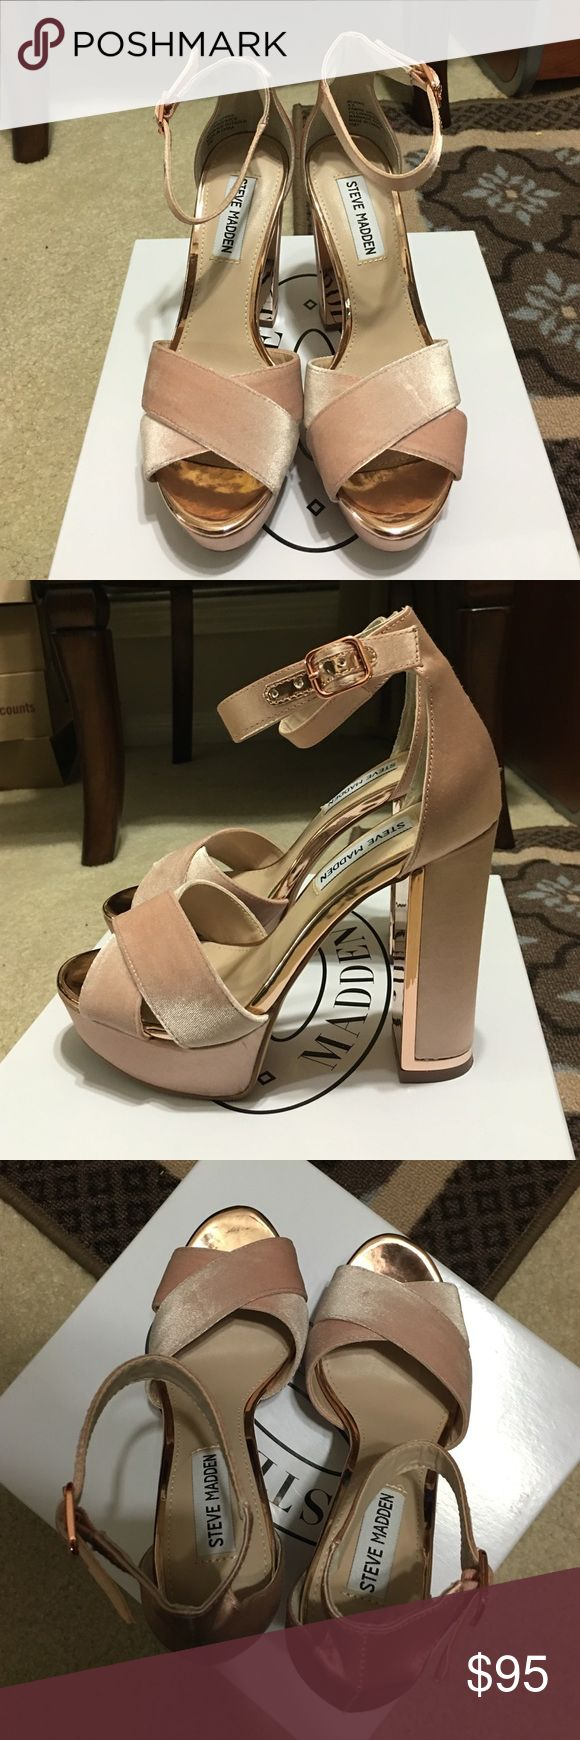 Steve Madden blush pink velvet heel with gold edge Used 1 time for a party - in Great condition Steve Madden Shoes Heels